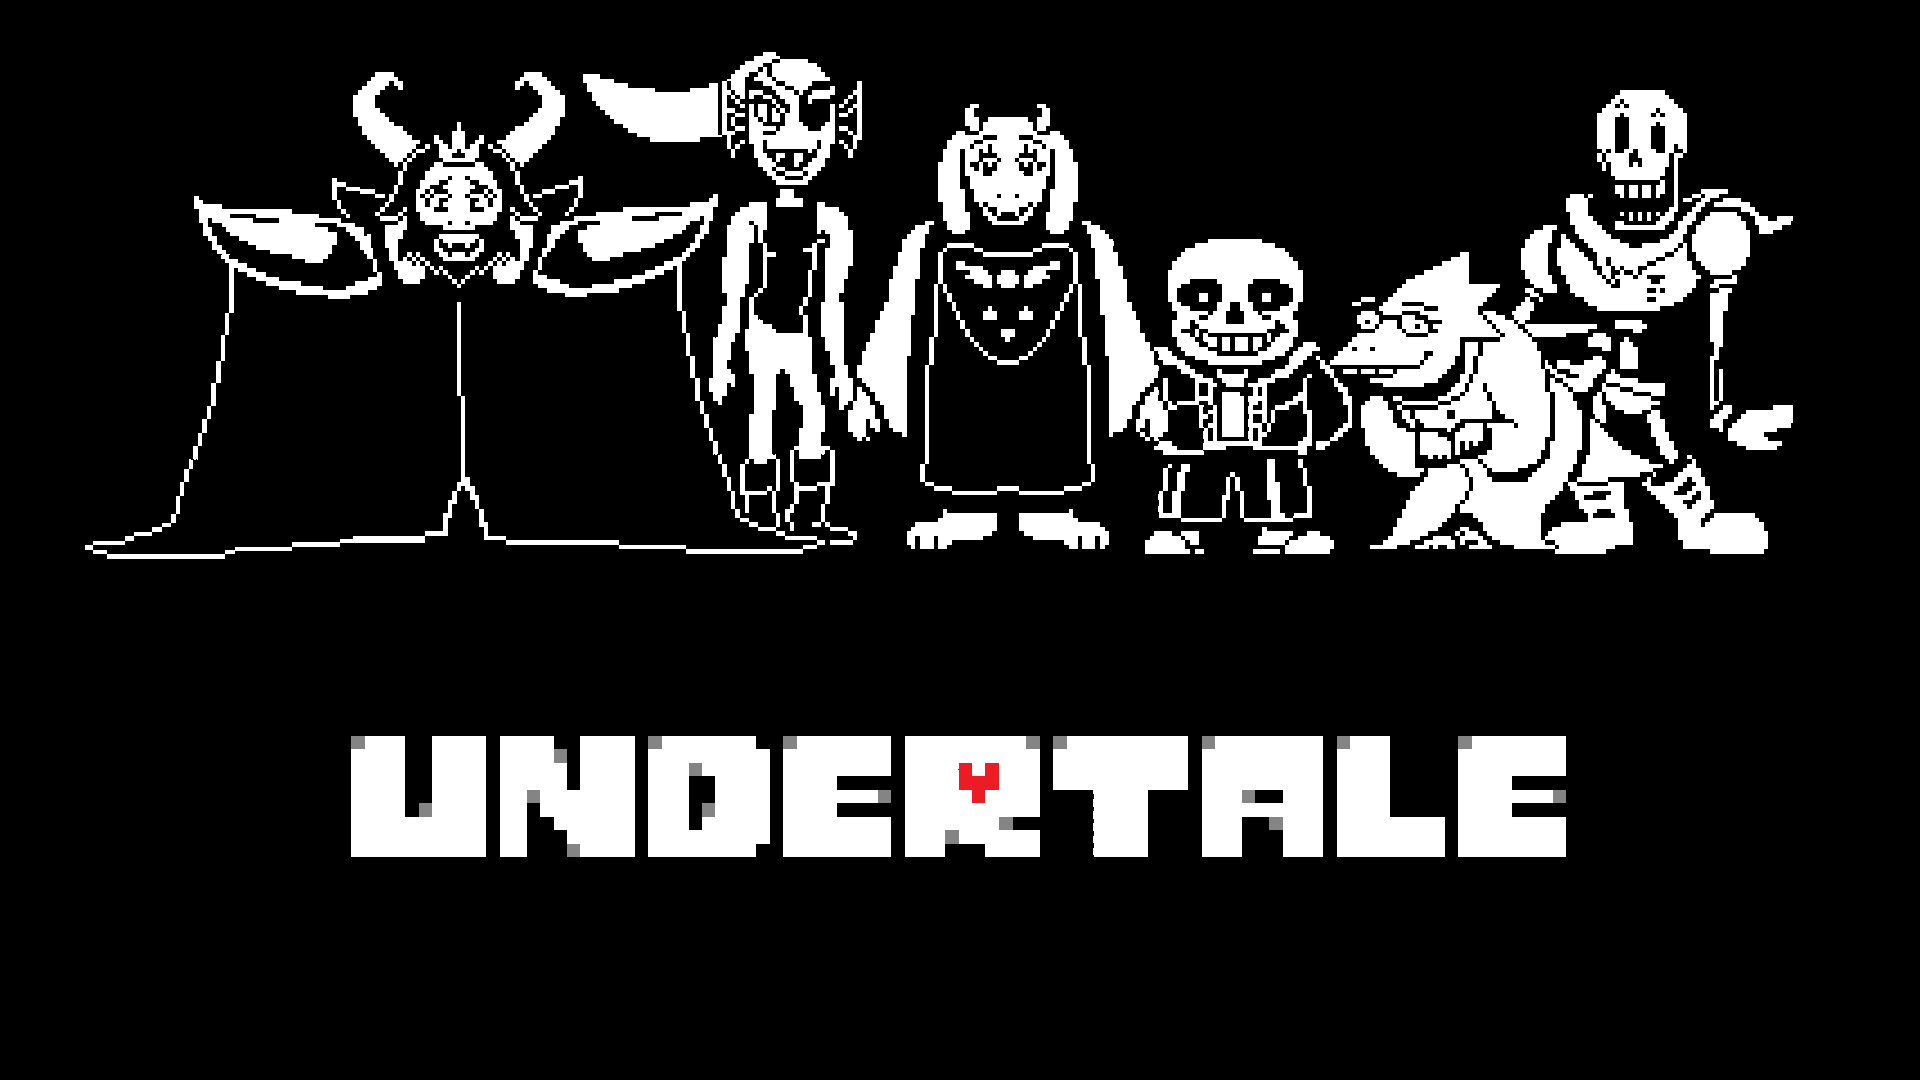 Undertale (Nintendo Switch)